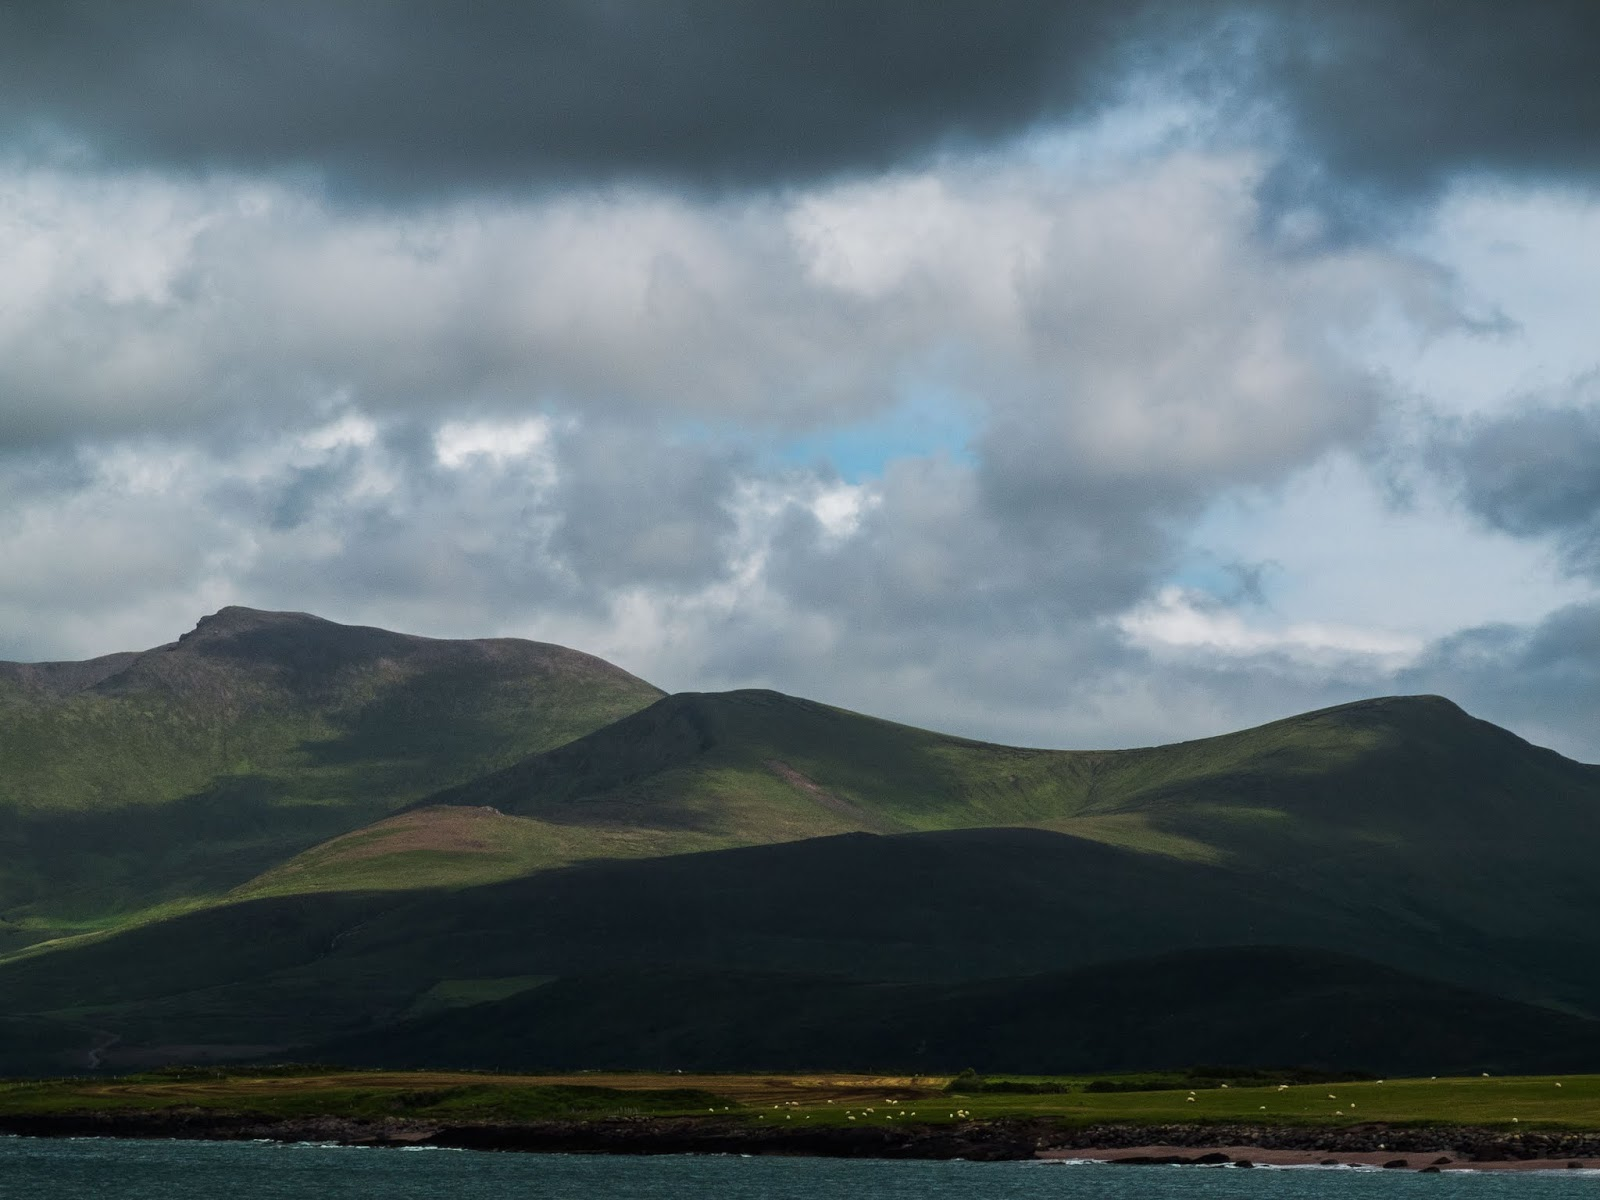 Mountains landcape of the Dingle Peninsula in County Kerry.